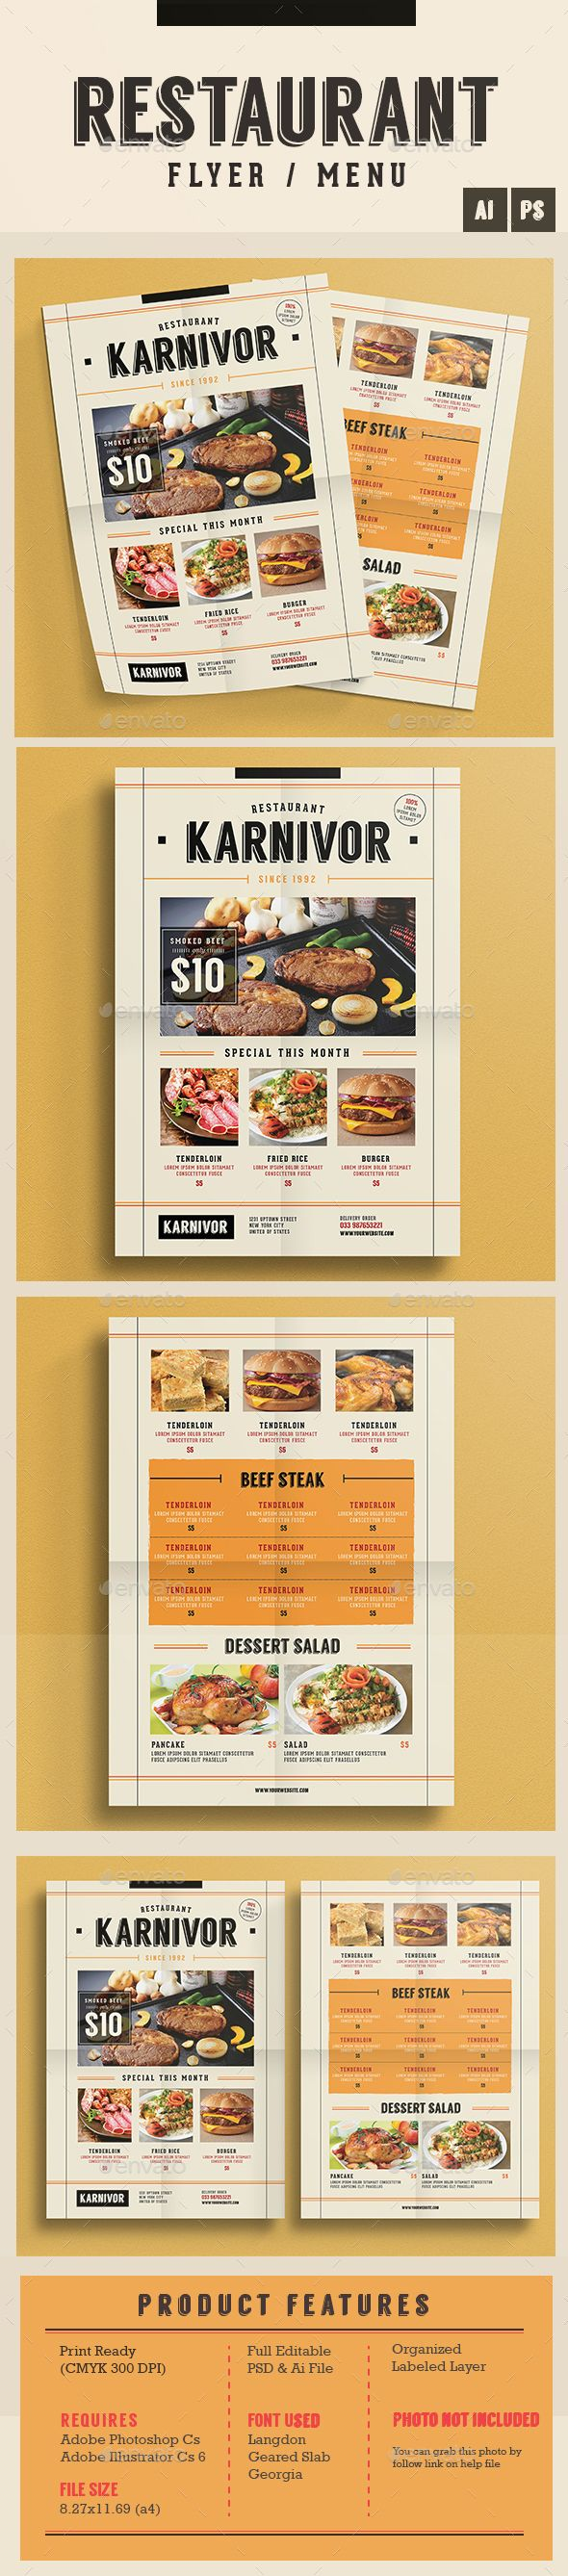 Restaurant Flyer Food Menu Template PSD, Vector AI #design Download: http://graphicriver.net/item/restaurant-flyer-menu/14021906?ref=ksioks